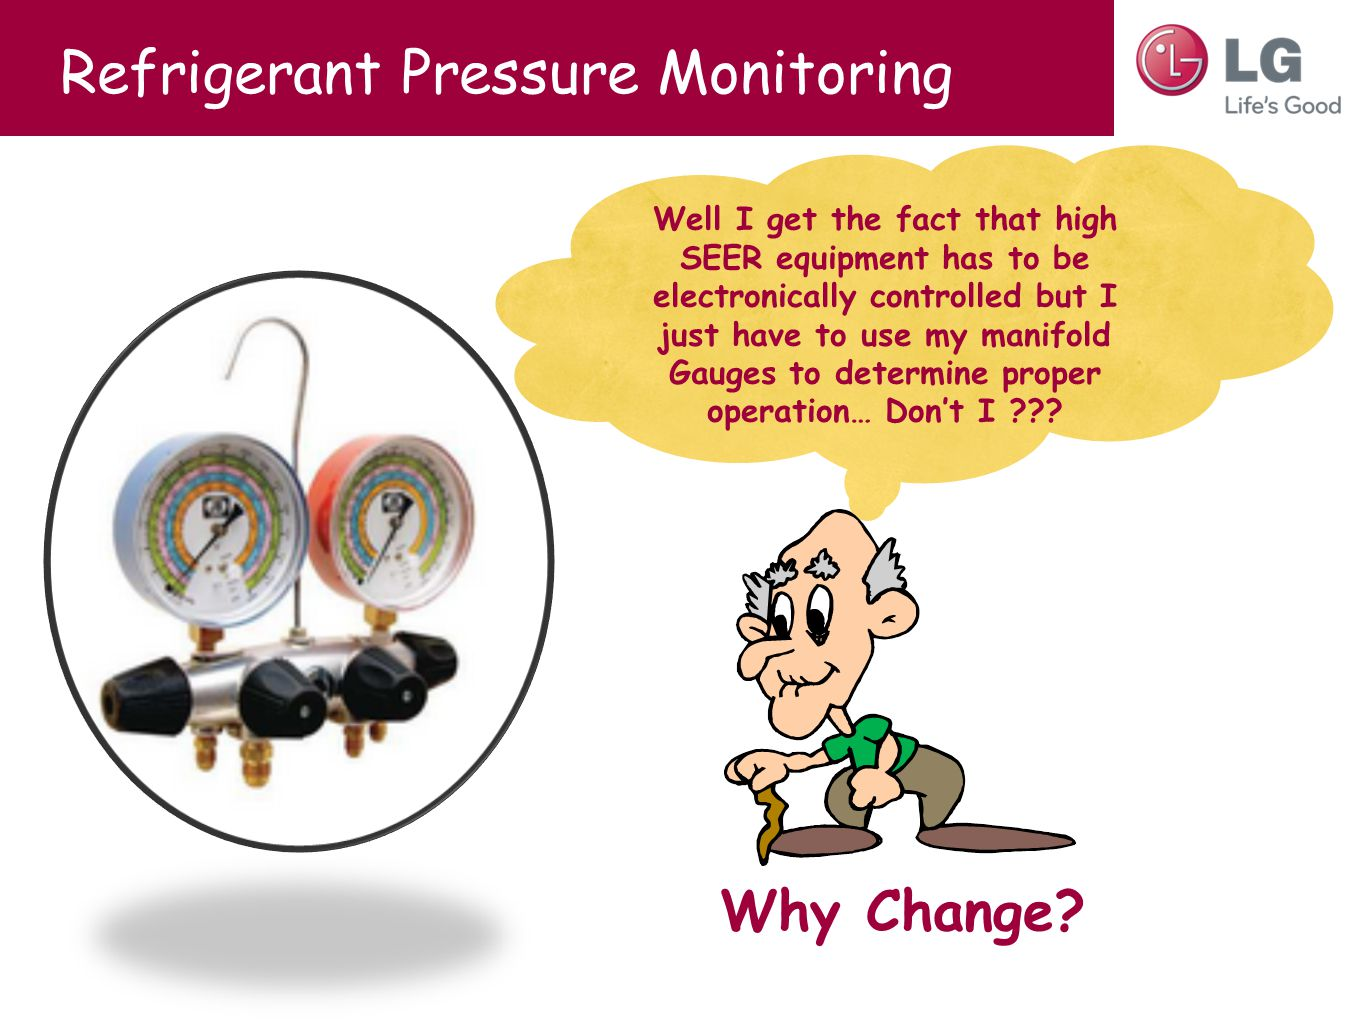 Refrigerant Pressure Monitoring Well I get the fact that high SEER equipment has to be electronically controlled but I just have to use my manifold Gauges to determine proper operation… Don't I .